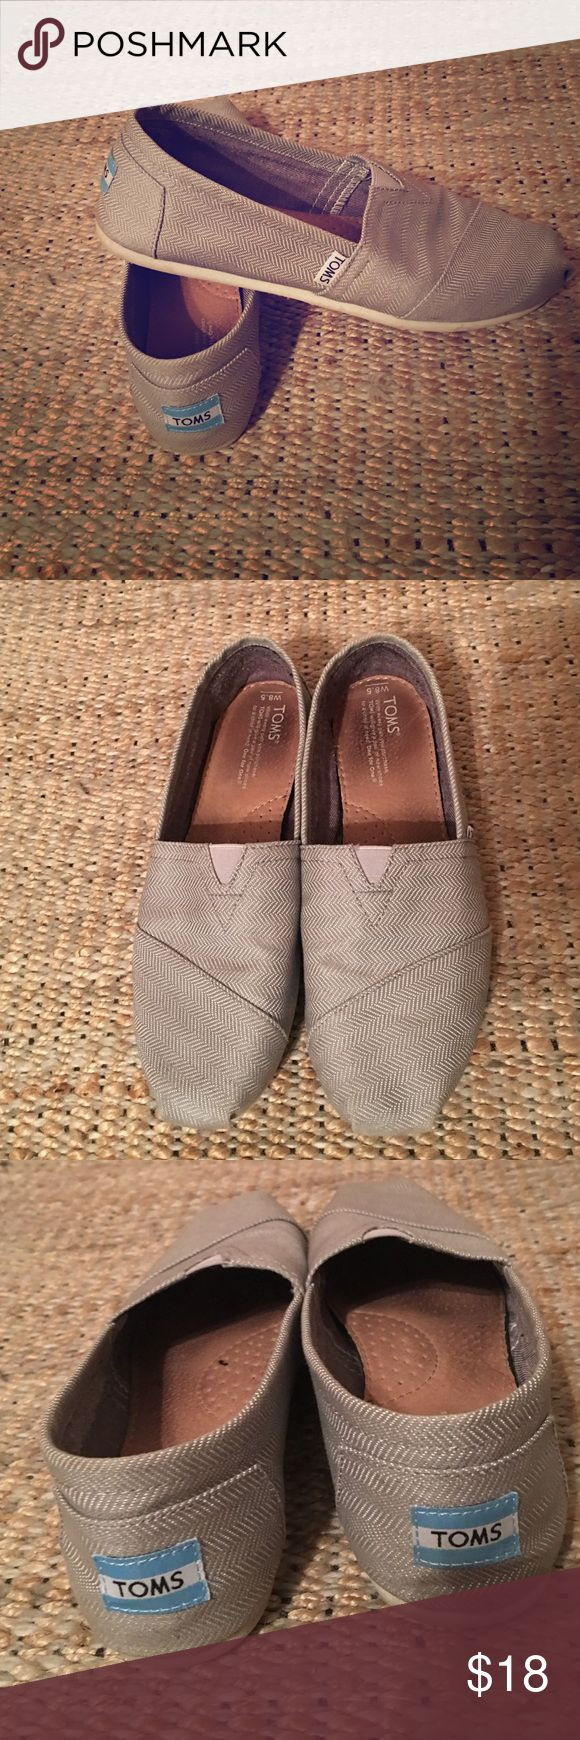 TOMS classic slip on Light gray. Some wear on soles. Otherwise in pretty good condition. No stains on fabric. TOMS Shoes Flats & Loafers